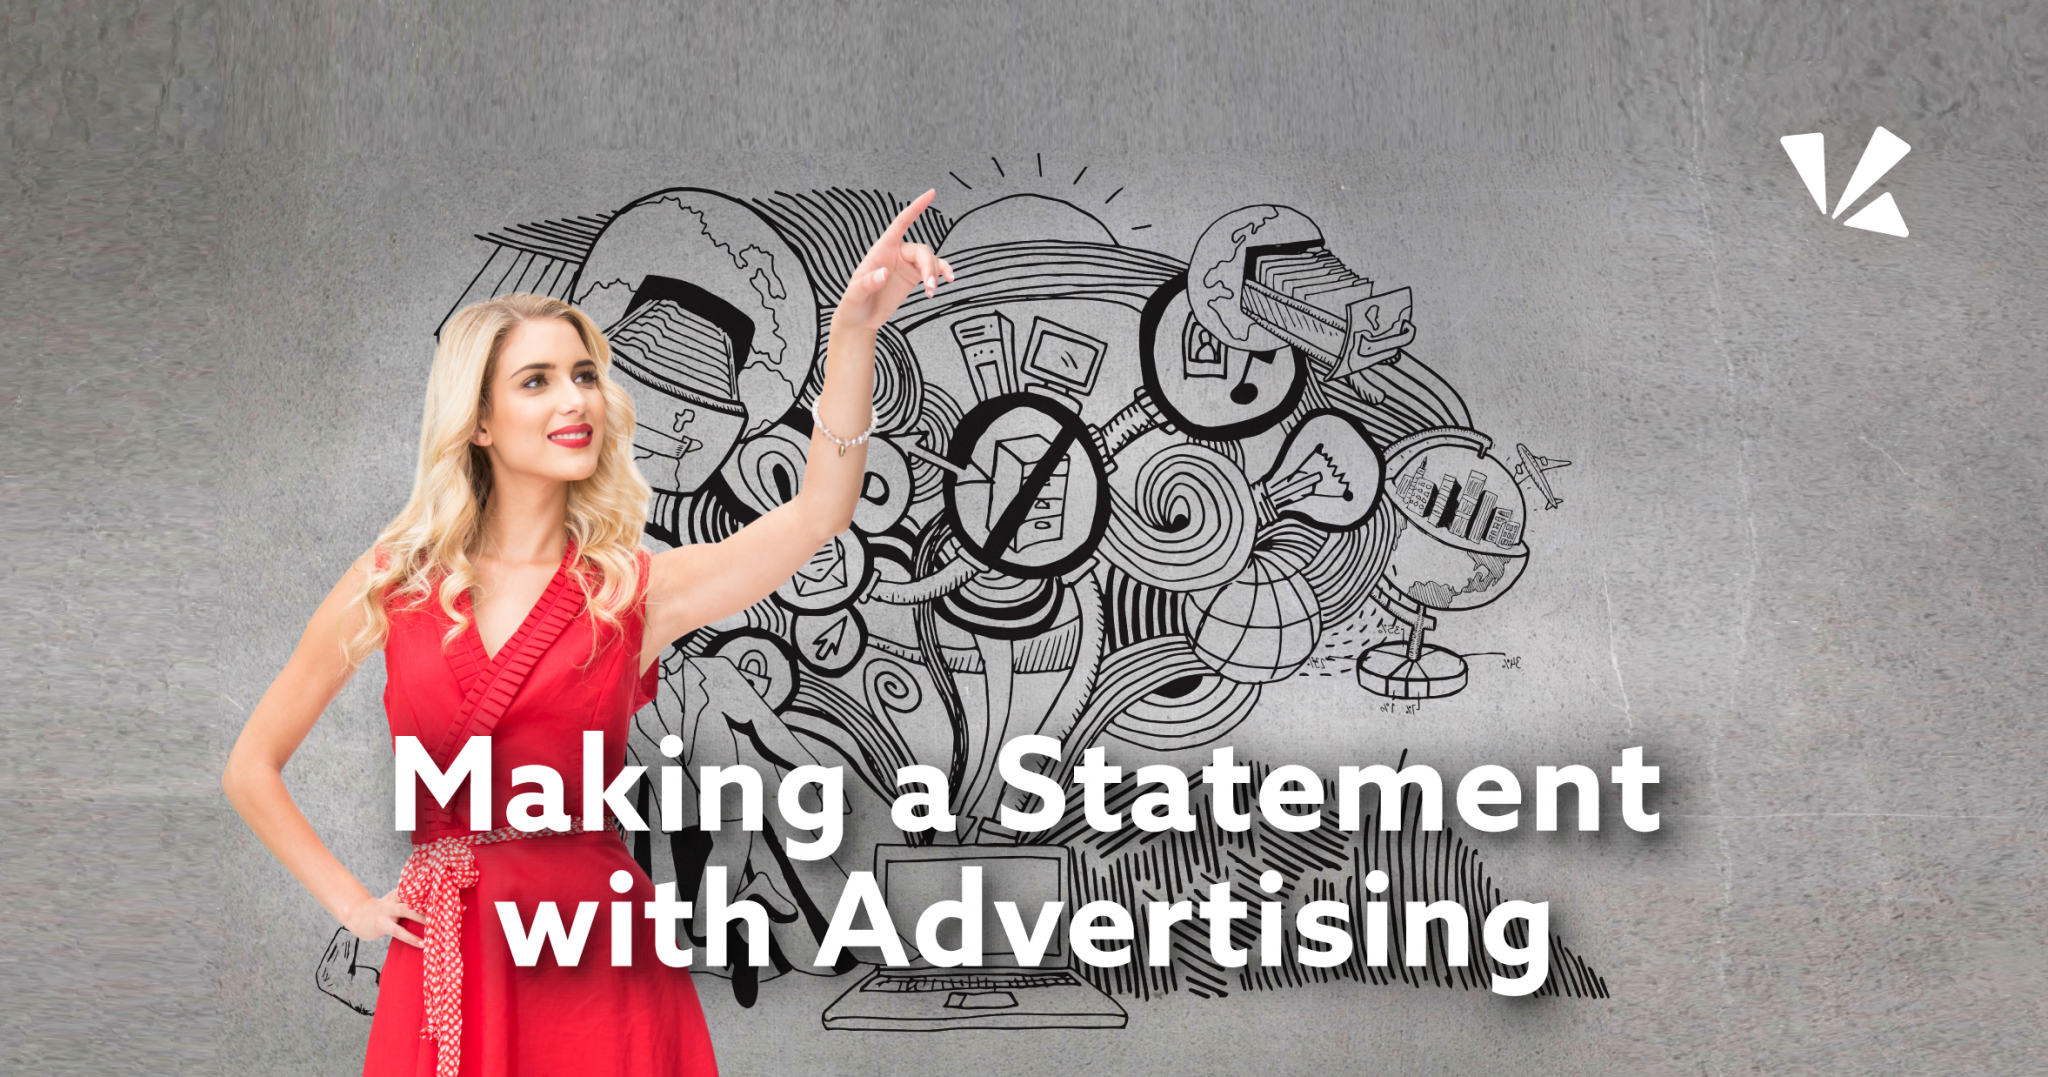 Making a statement with advertising blog header